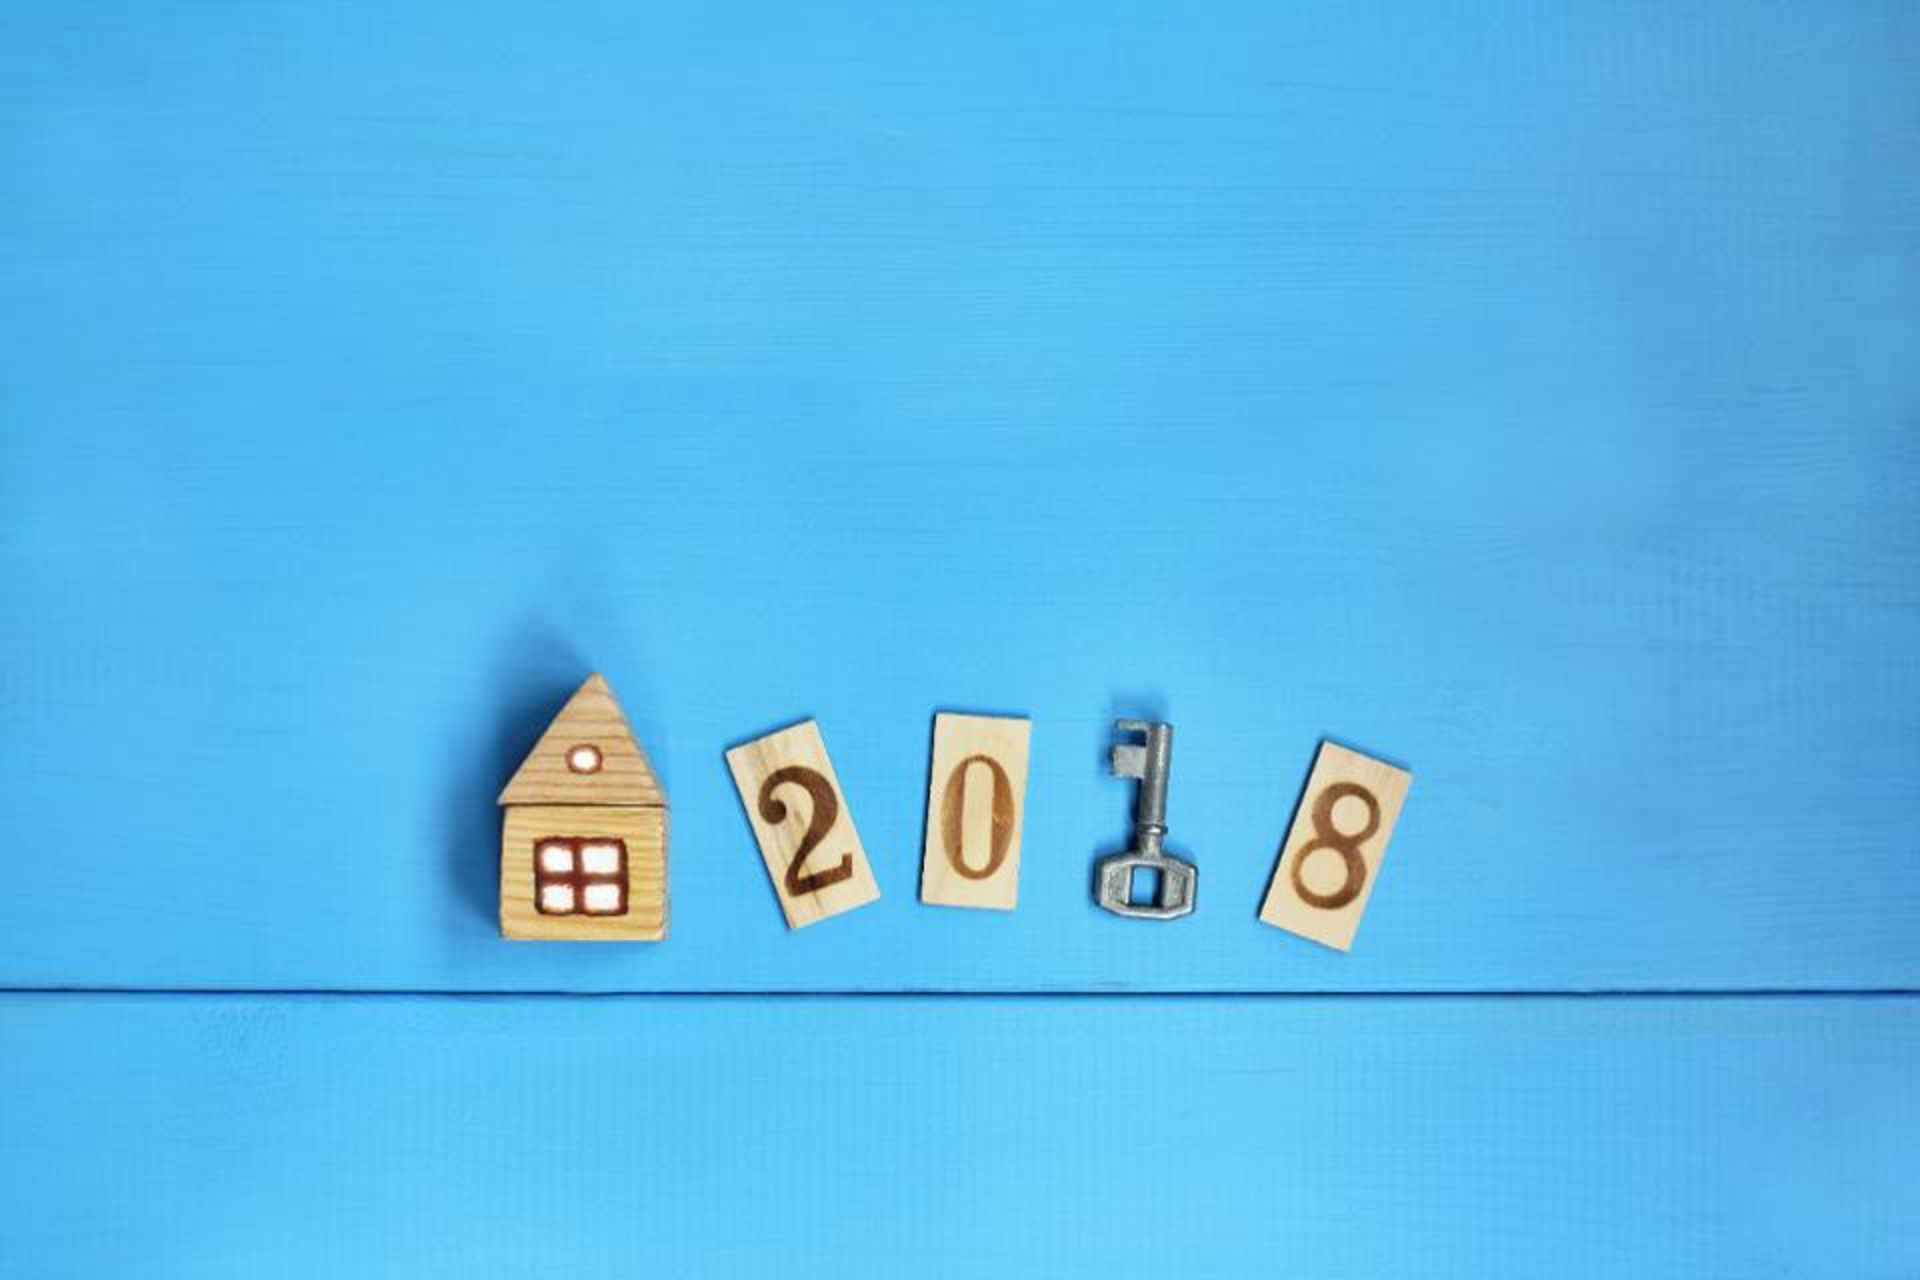 Planning To Buy A Home? 5 Things To Know About The 2018 Housing Market